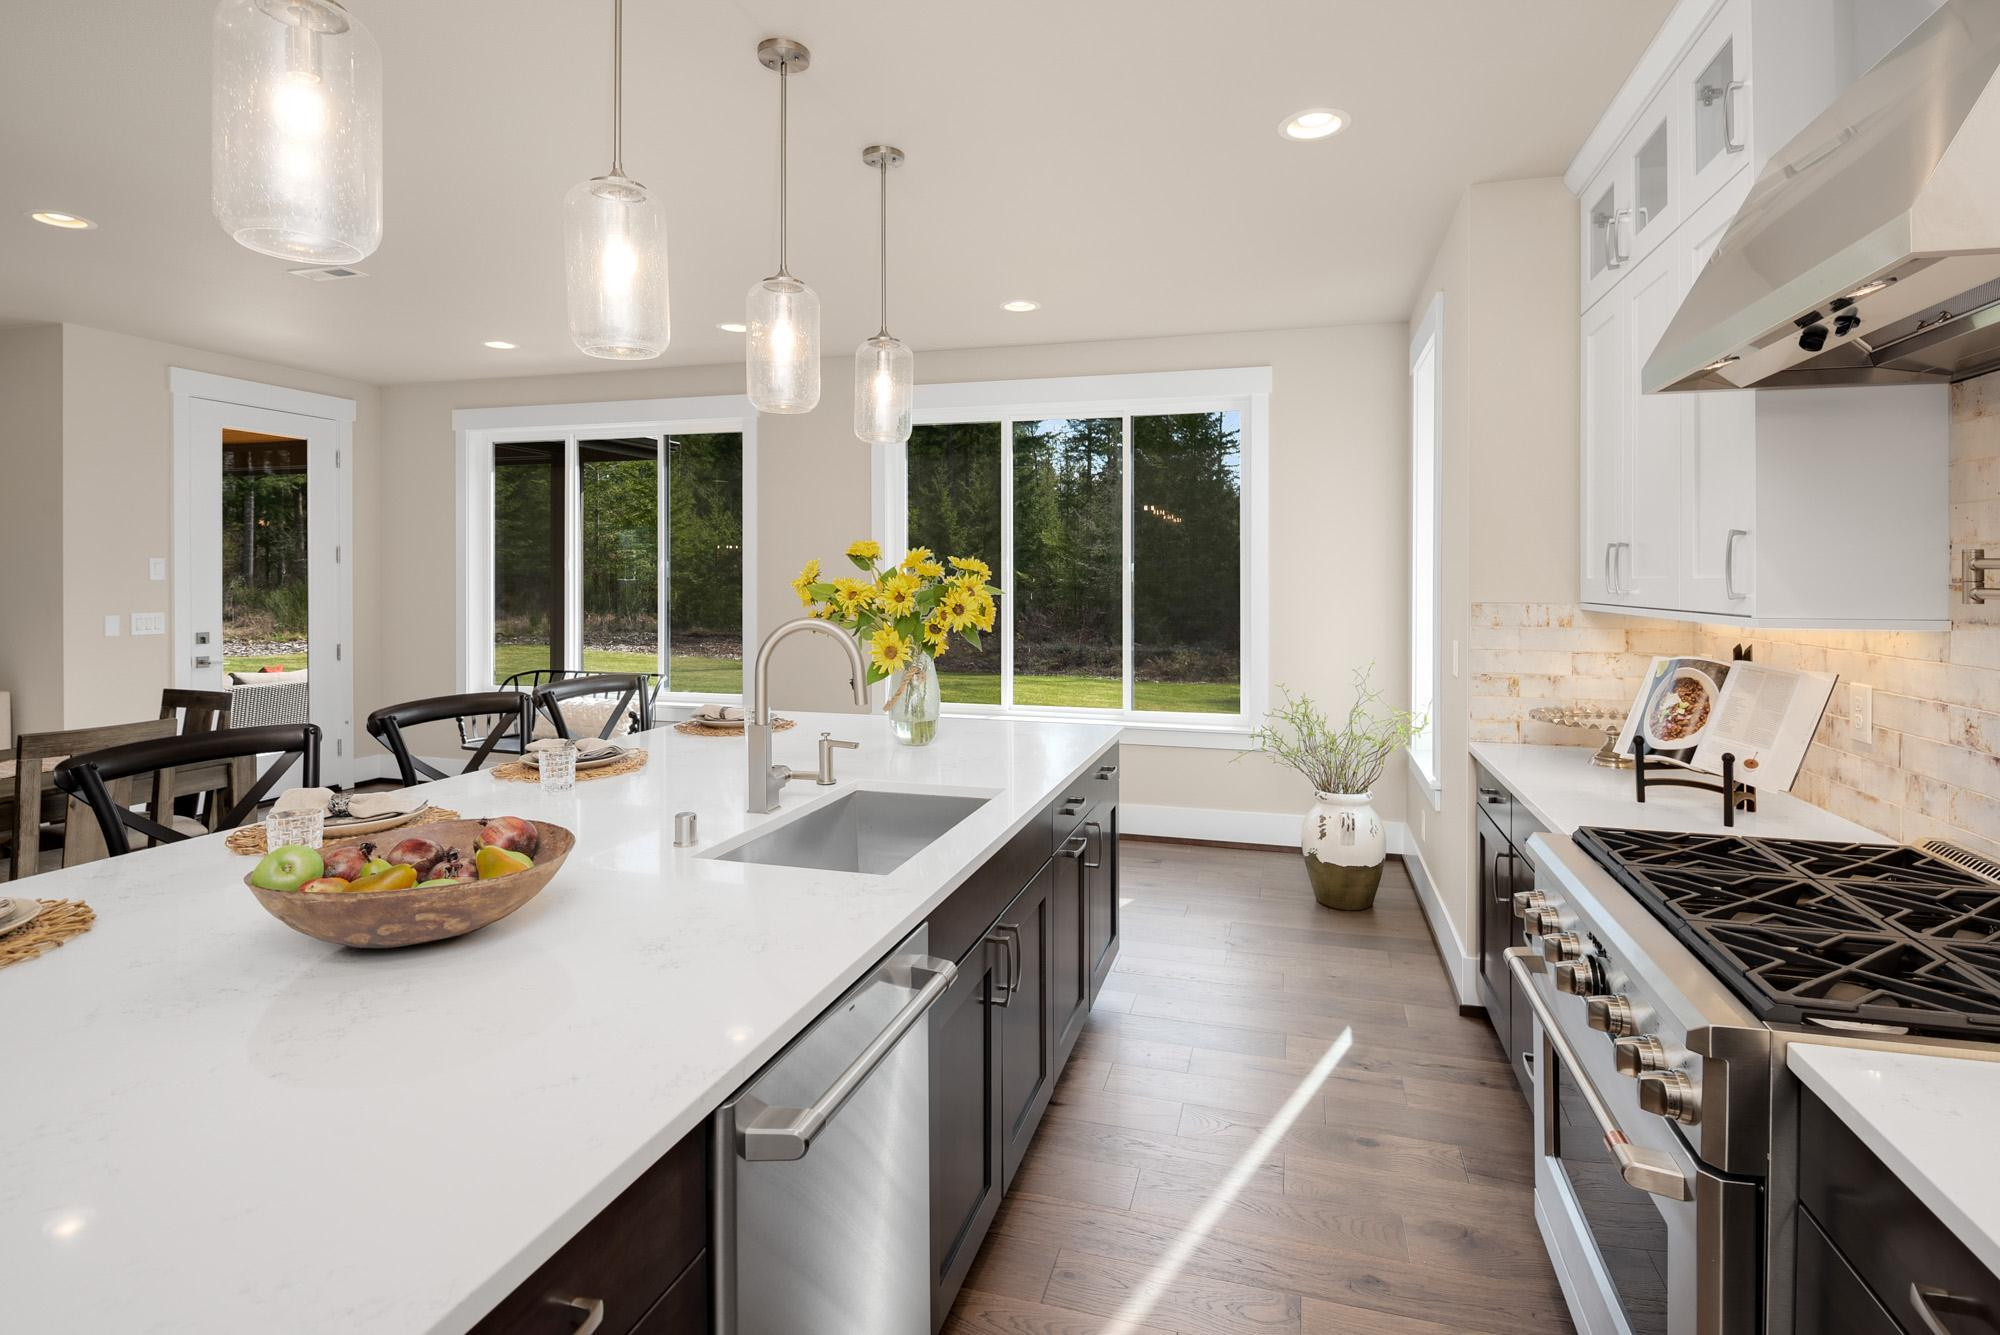 Kitchen featured in the Plan 263 By Schneider Family Homes in Seattle-Bellevue, WA